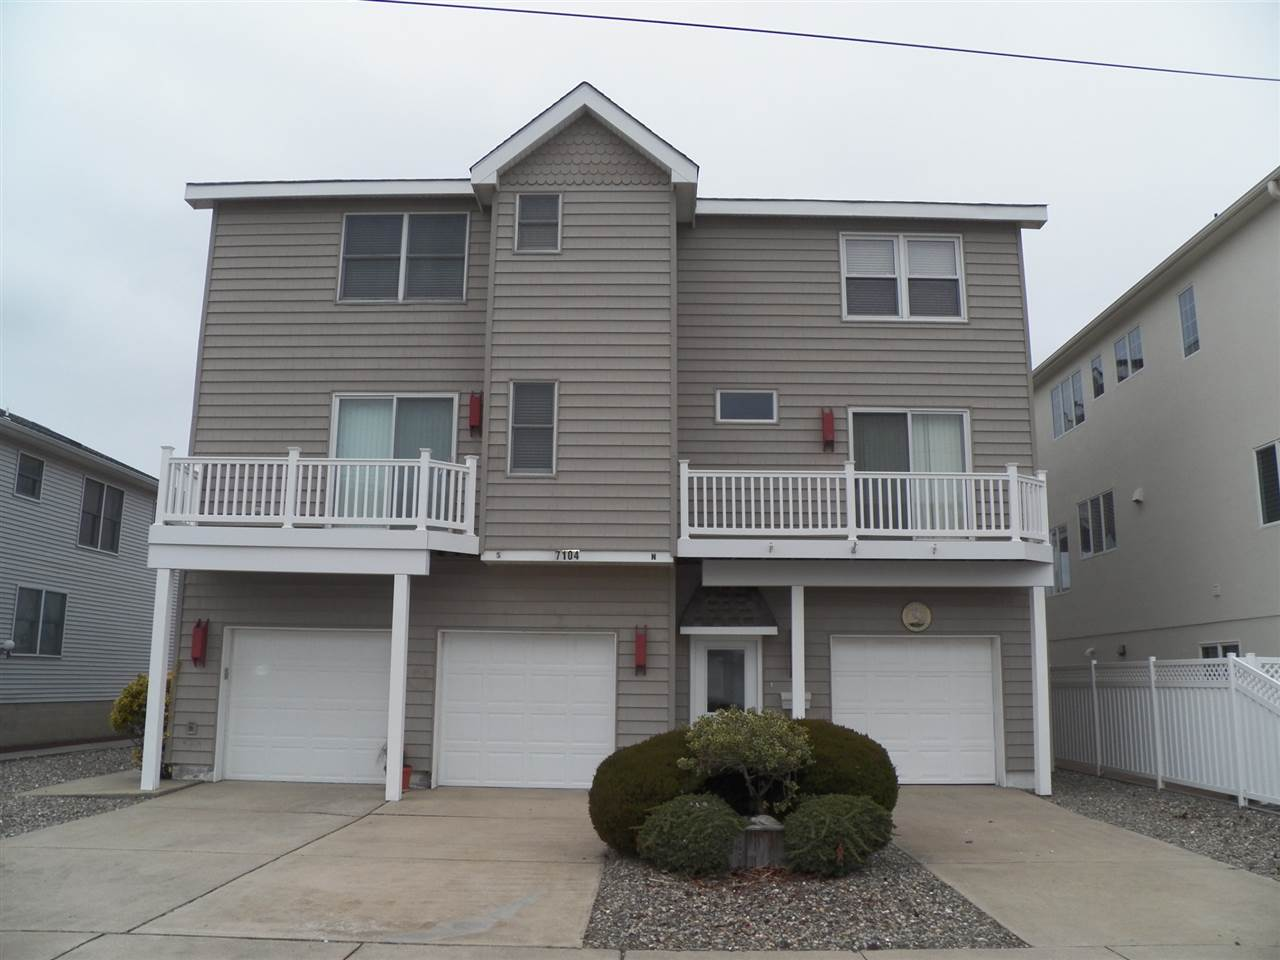 7104 Central Ave, North Unit, Sea Isle City